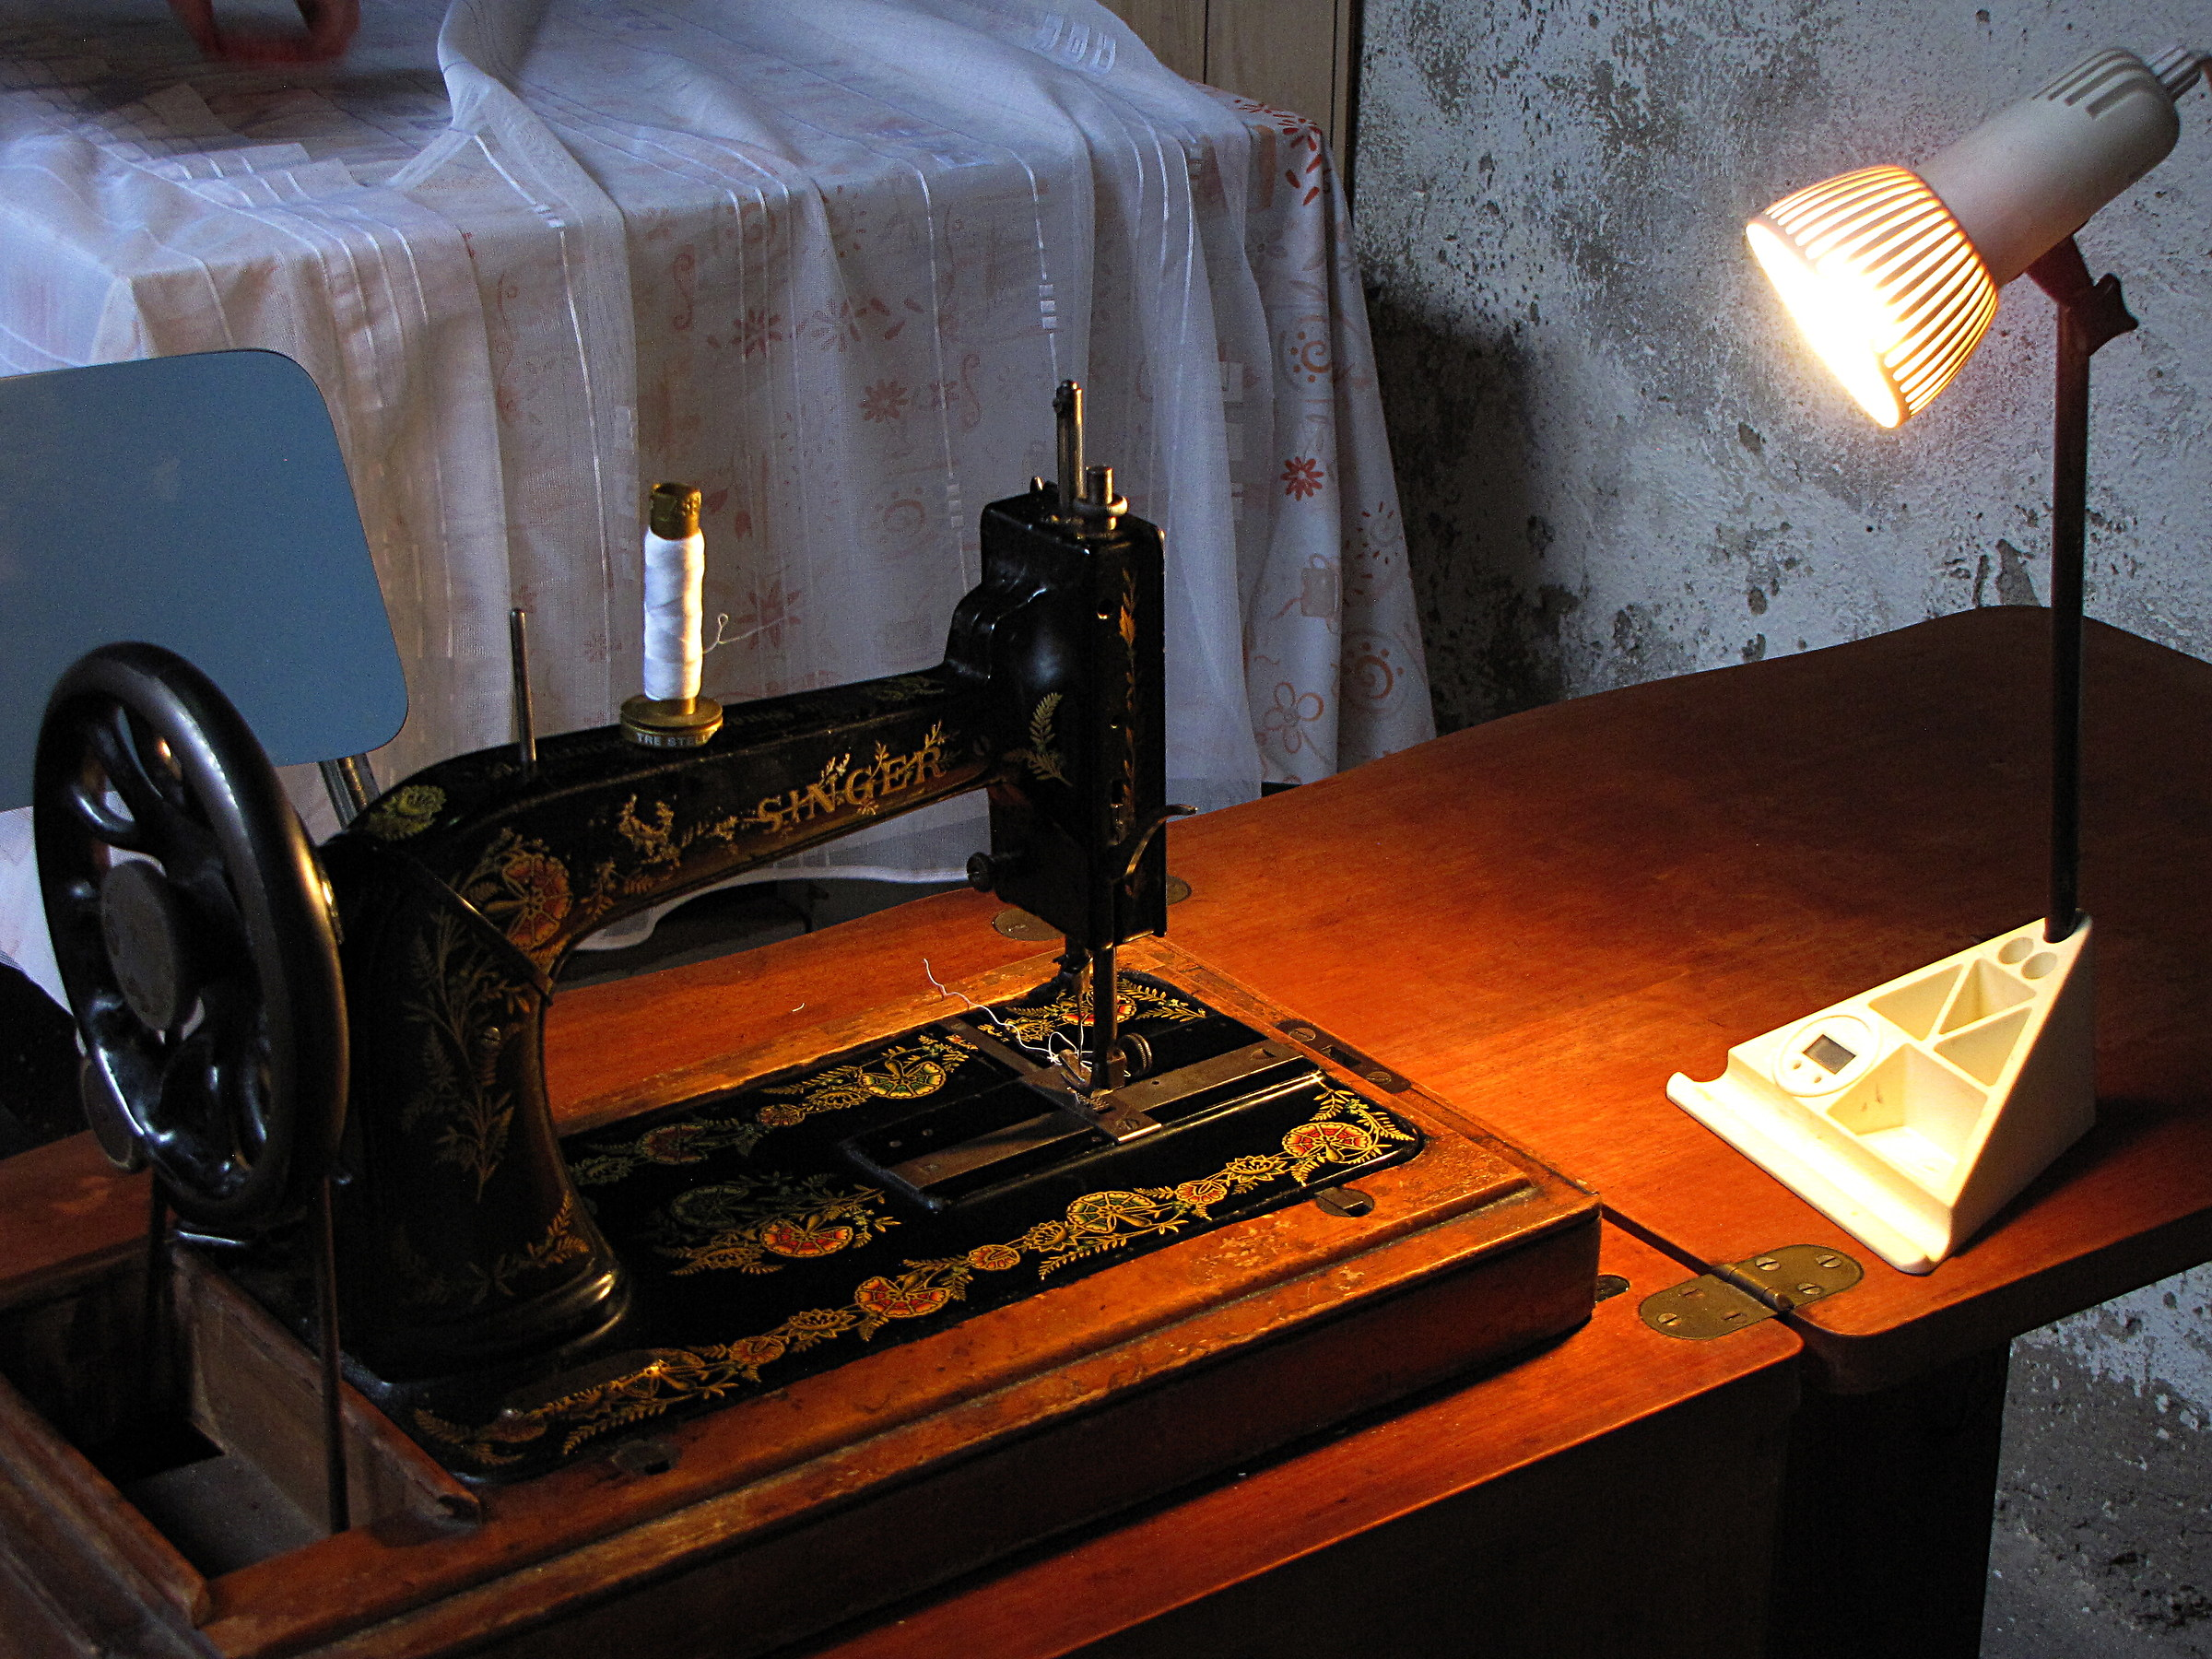 The lamp and the sewing machine...